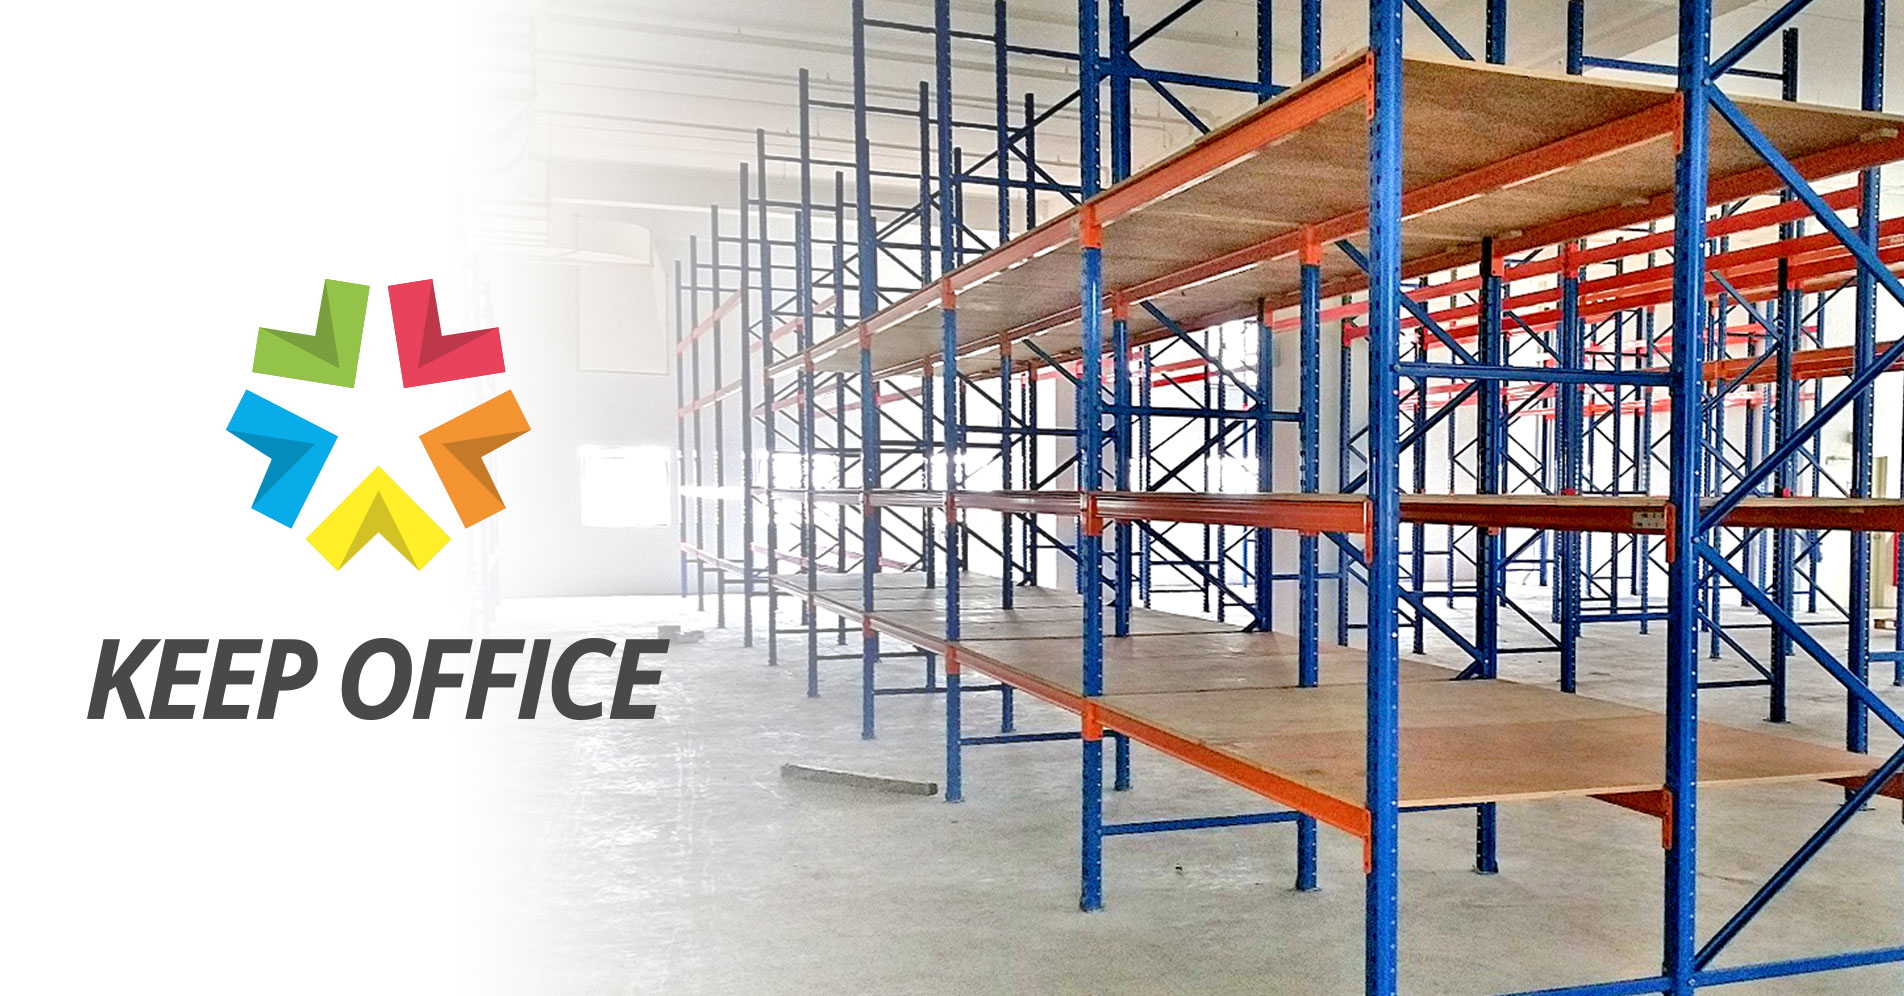 Keep Office Office Warehouse Shelving & Racking System